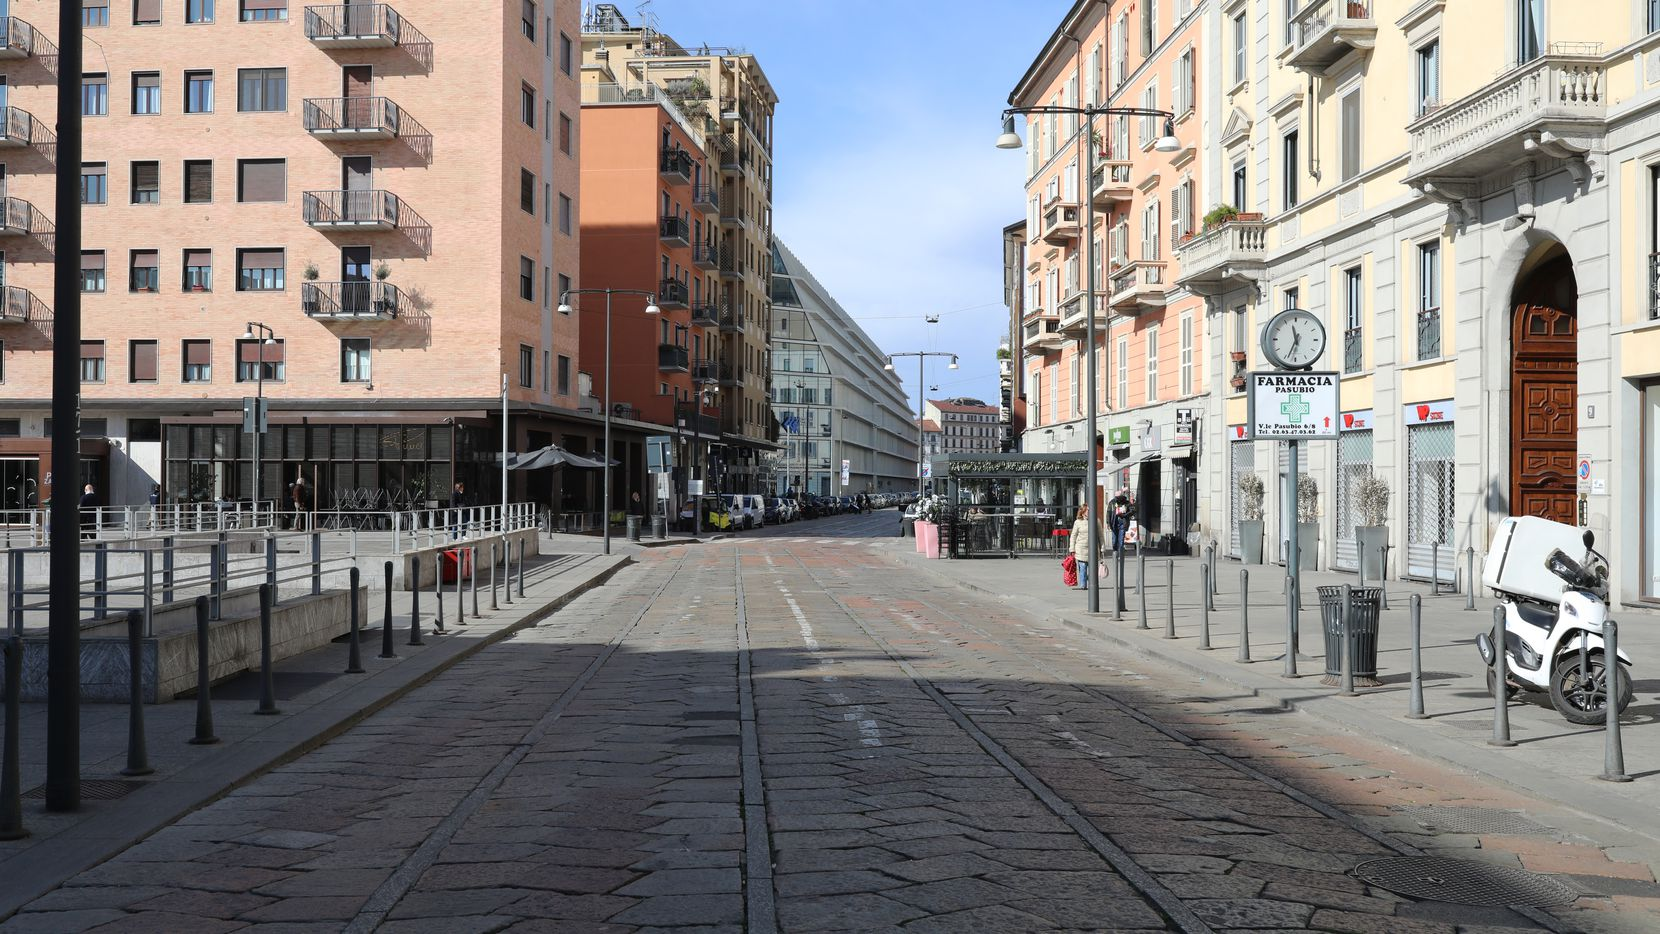 MILAN, ITALY - FEBRUARY 26: A main road in the city center is seen empty on February 26, 2020 in Milan, Italy. 